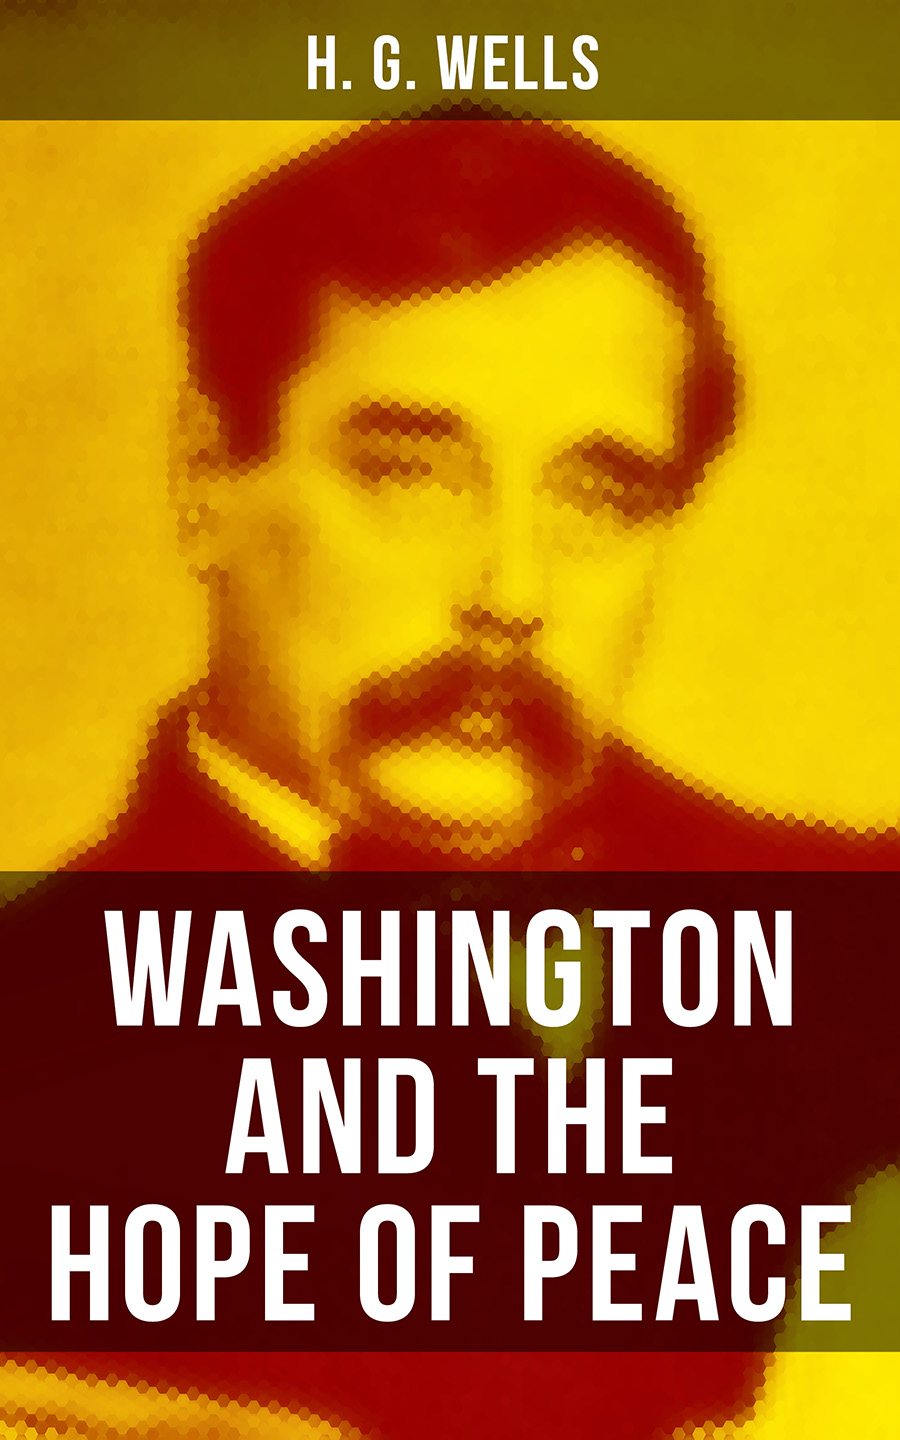 H. G. Wells WASHINGTON AND THE HOPE OF PEACE macdonald g hope of the gospel